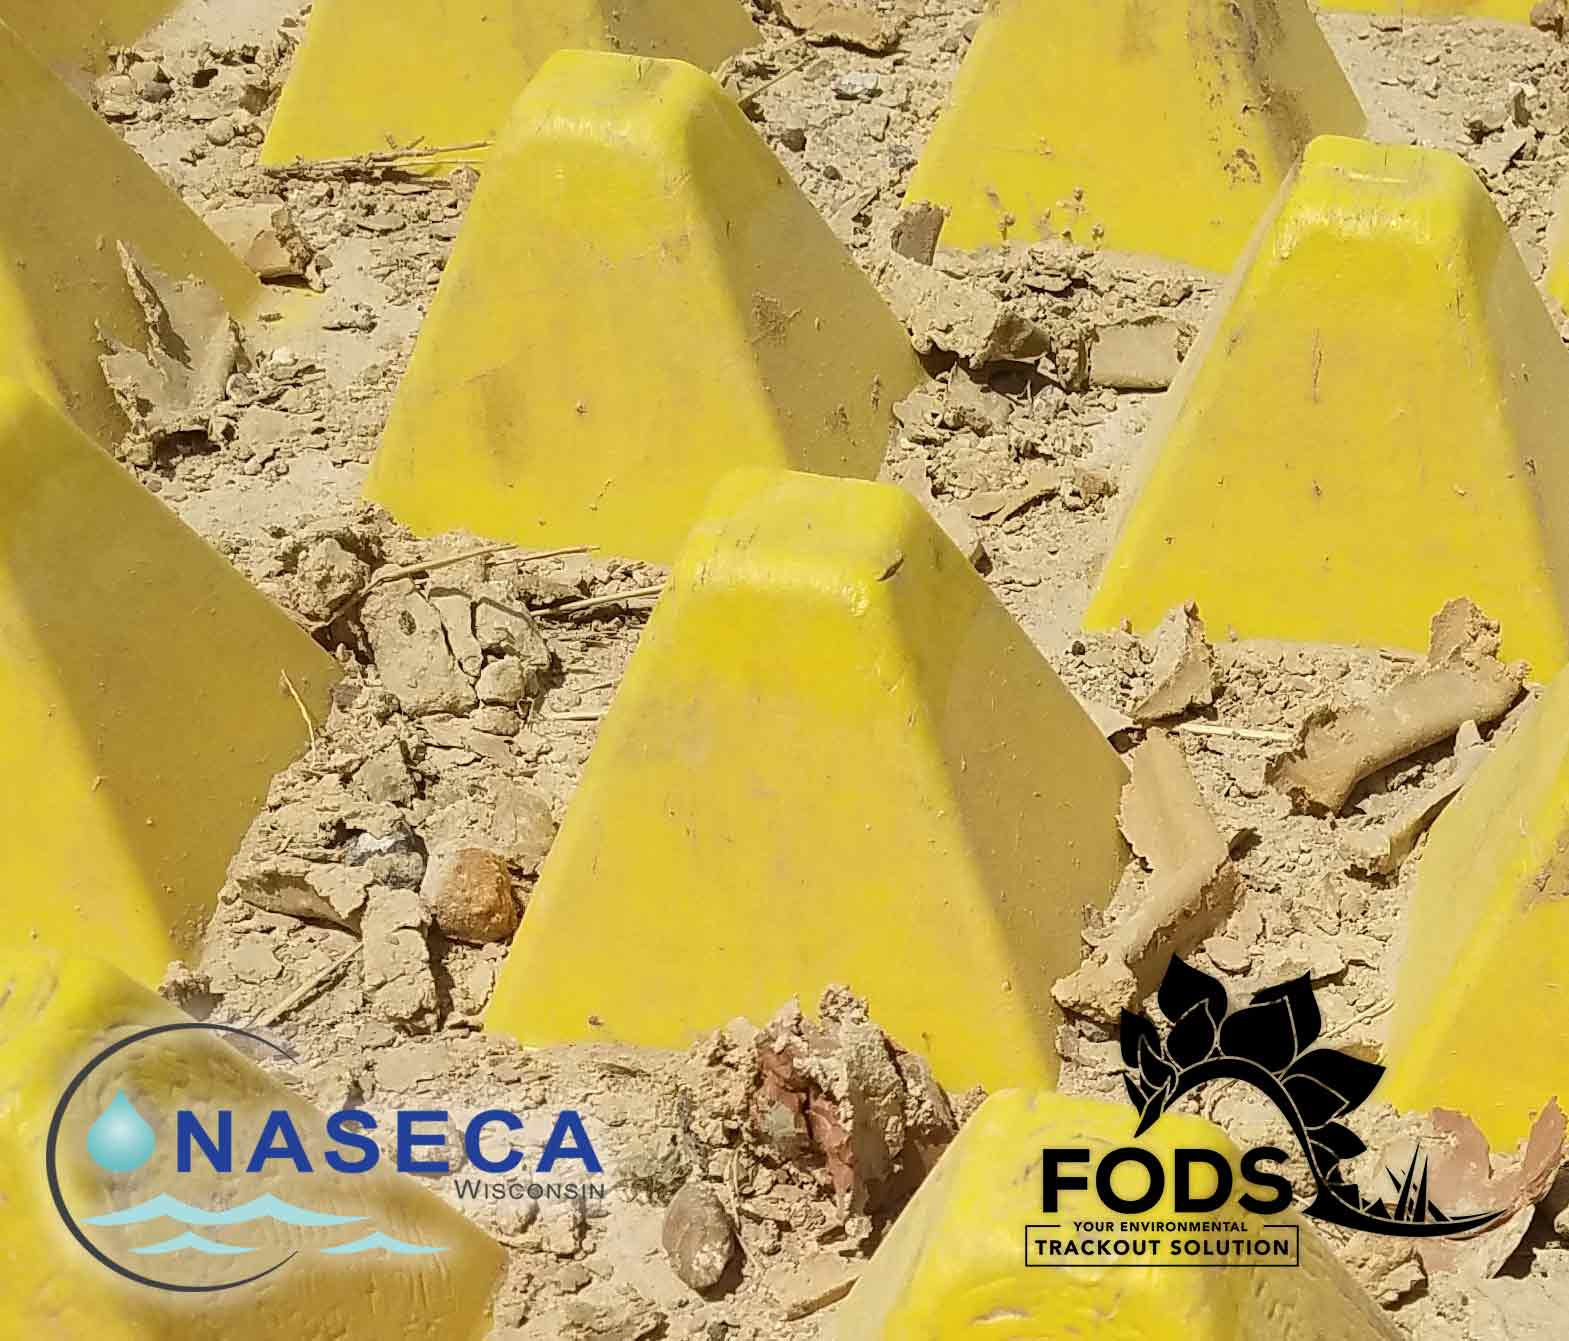 FODS_mudmats_construction_entrance_construction_exit_trackout_control_bmp_grid_wheel_wash_site_cleaning_mats_portable_vehicle_tracking_pad_temporary_trackout_control_device_rumble_plates_jobsite_plastic_mats_NASECA.jpg